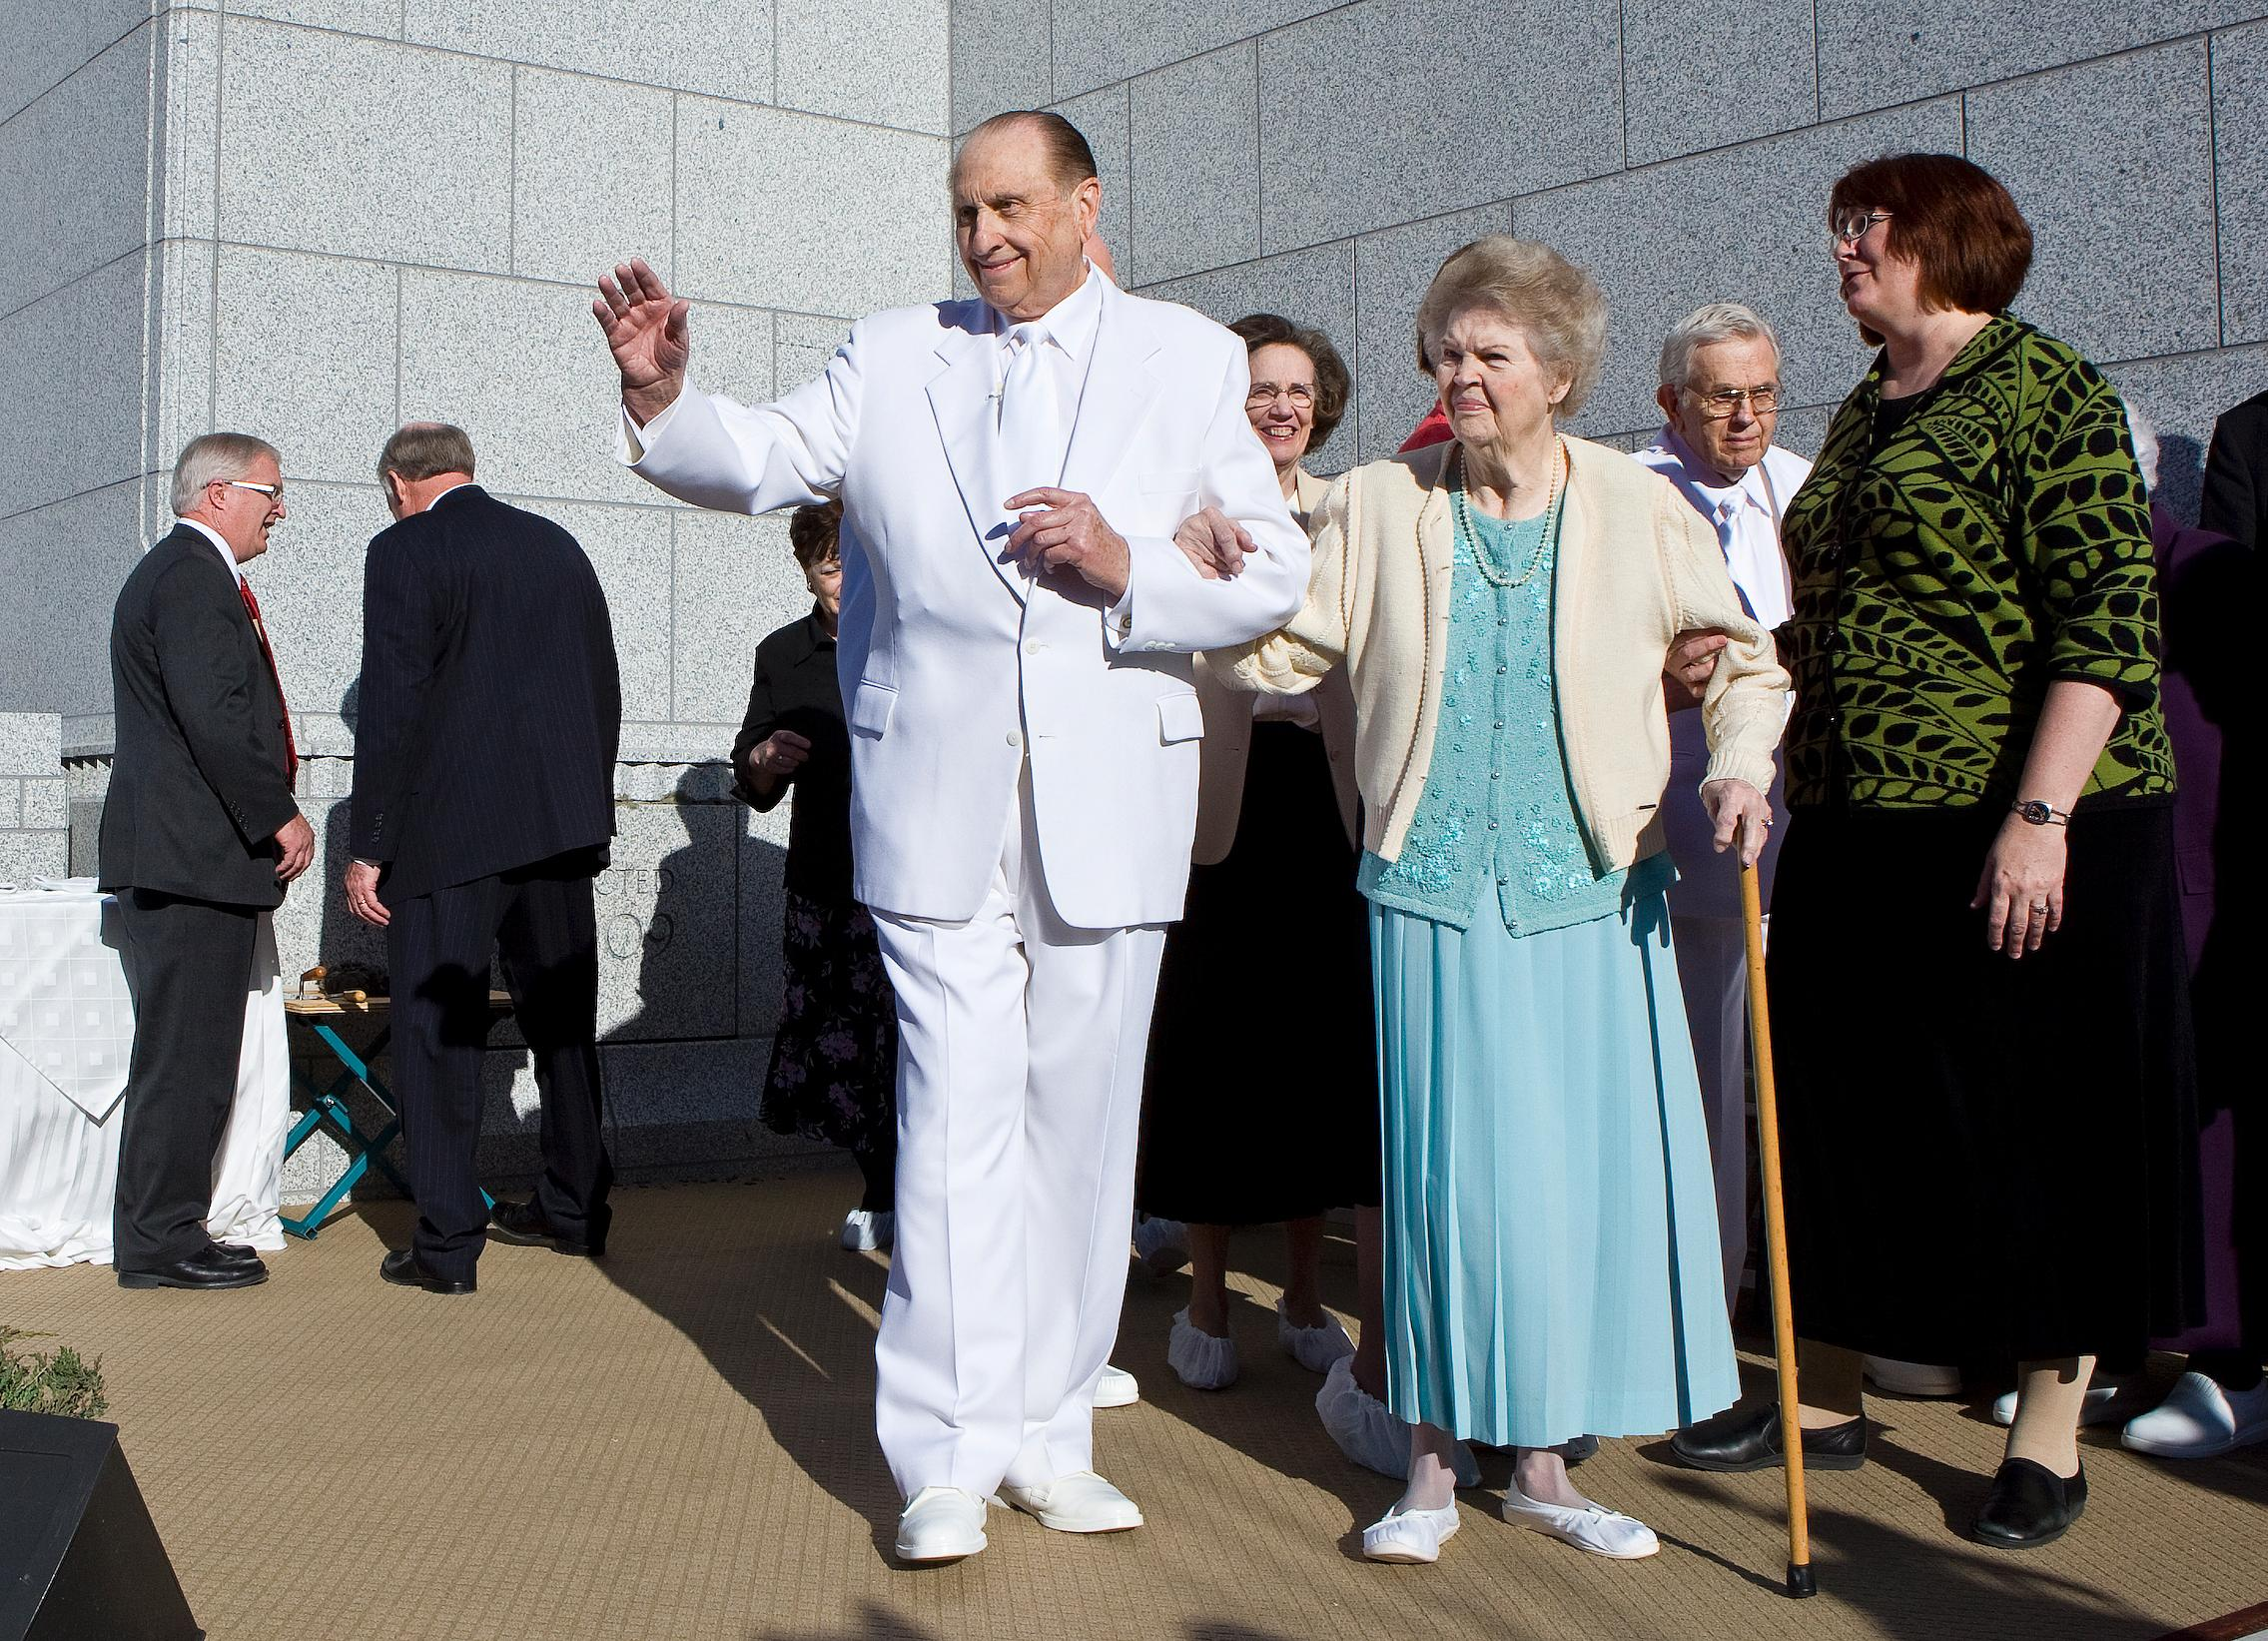 President and Sister Monson greet the crowd following the cornerstone ceremony at the Draper Utah Temple in March 2009. (Photo: MormonNewsroom.org)<p></p>